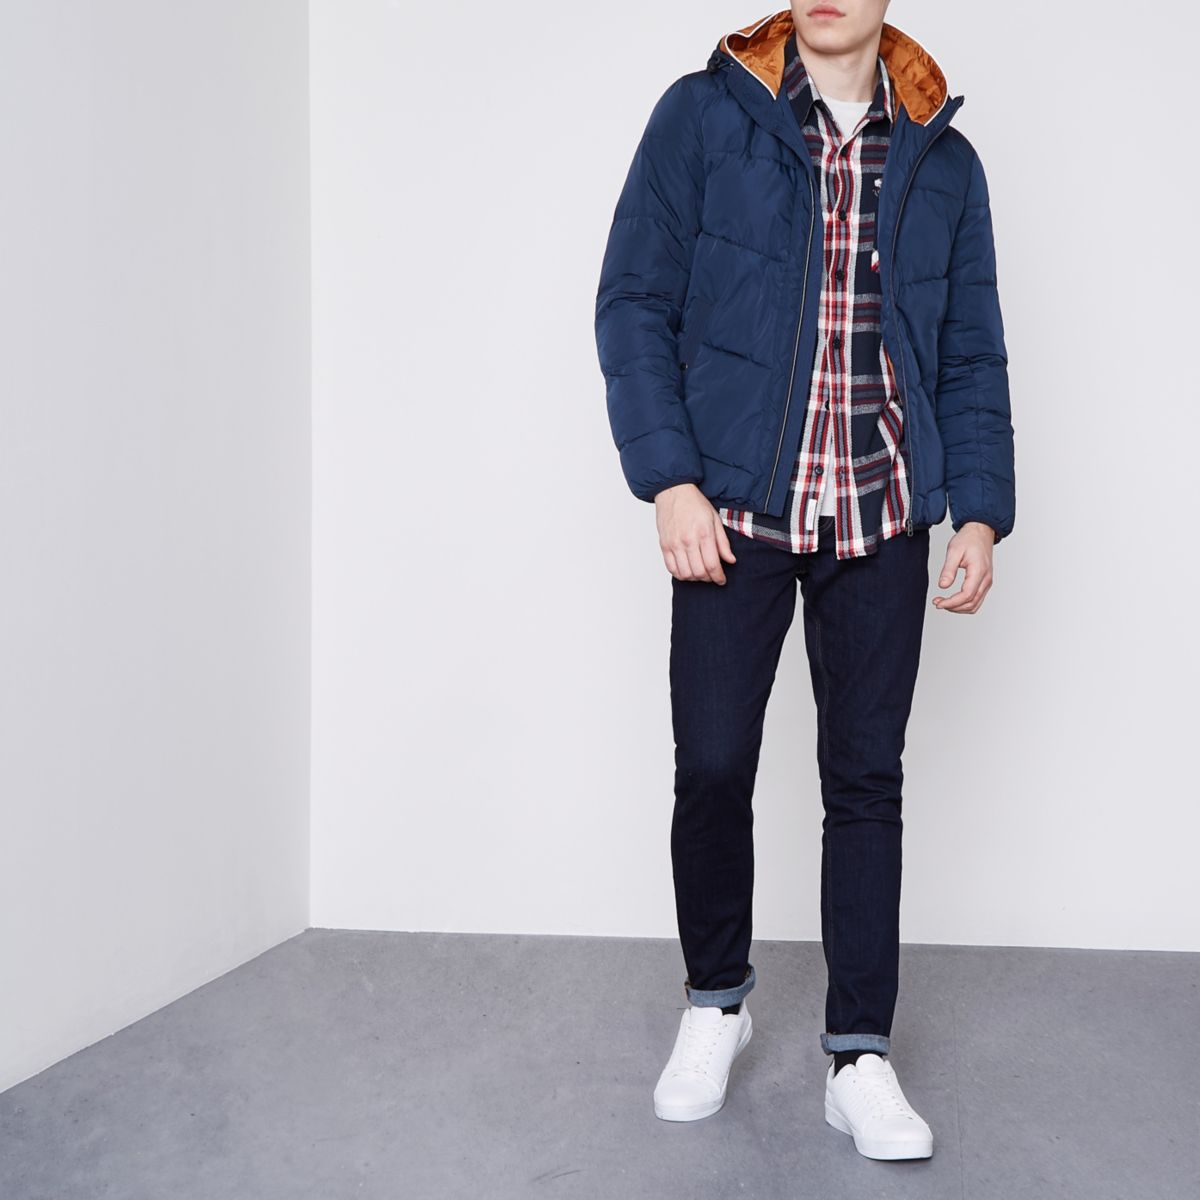 Navy Jack & Jones hooded puffer jacket